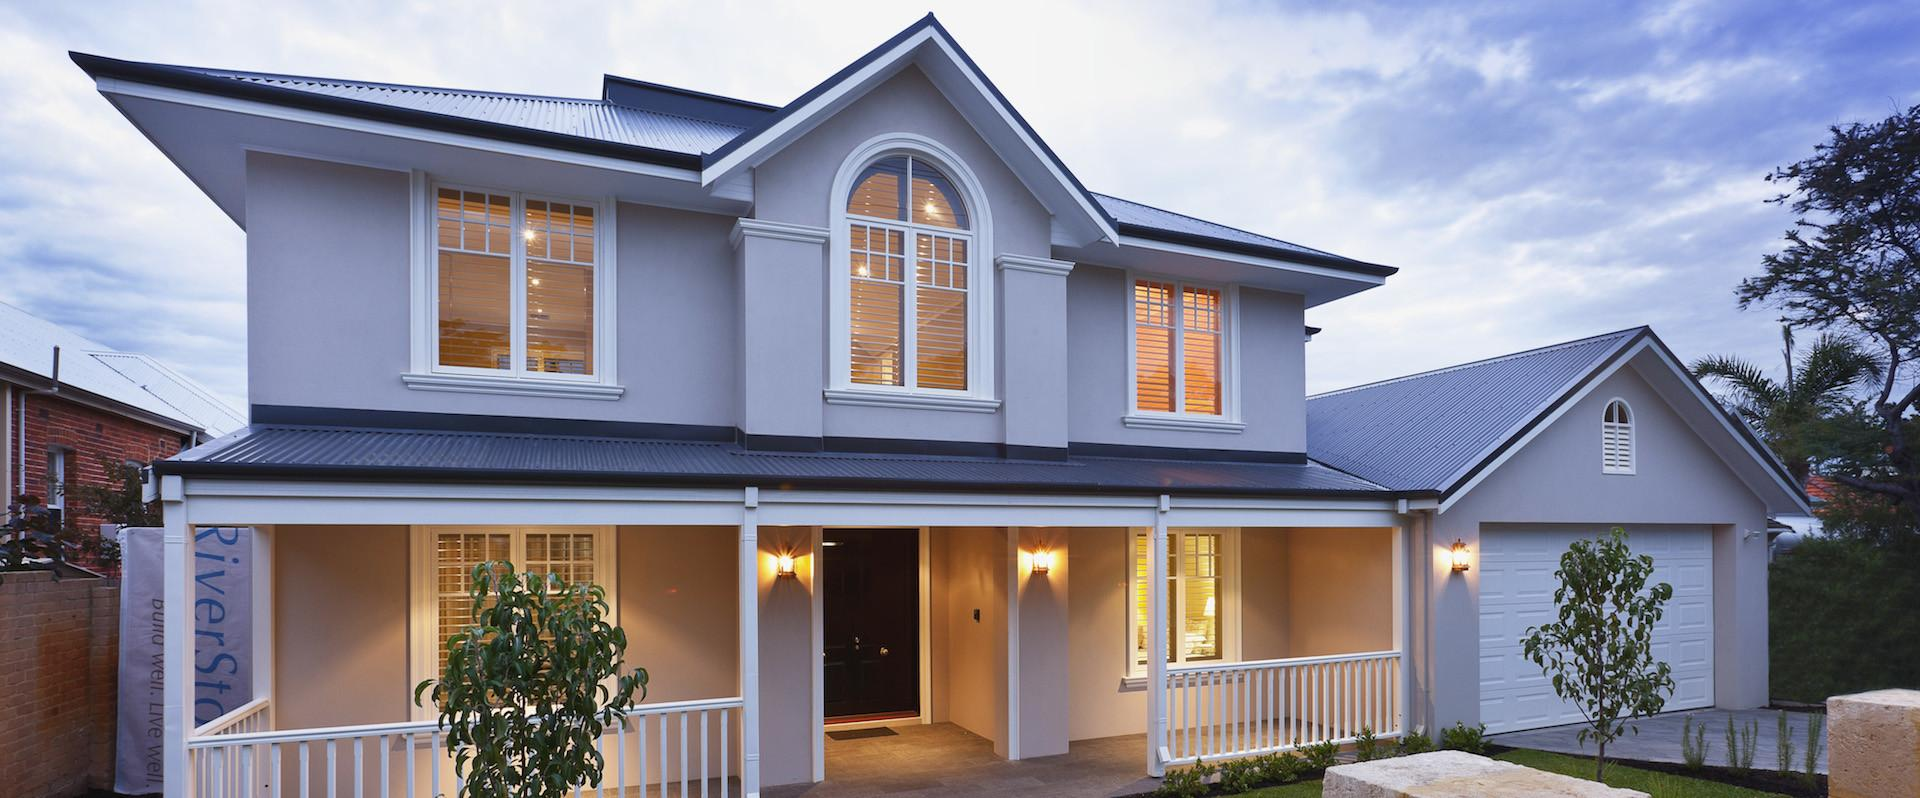 Federation Style House Plans Melbourne